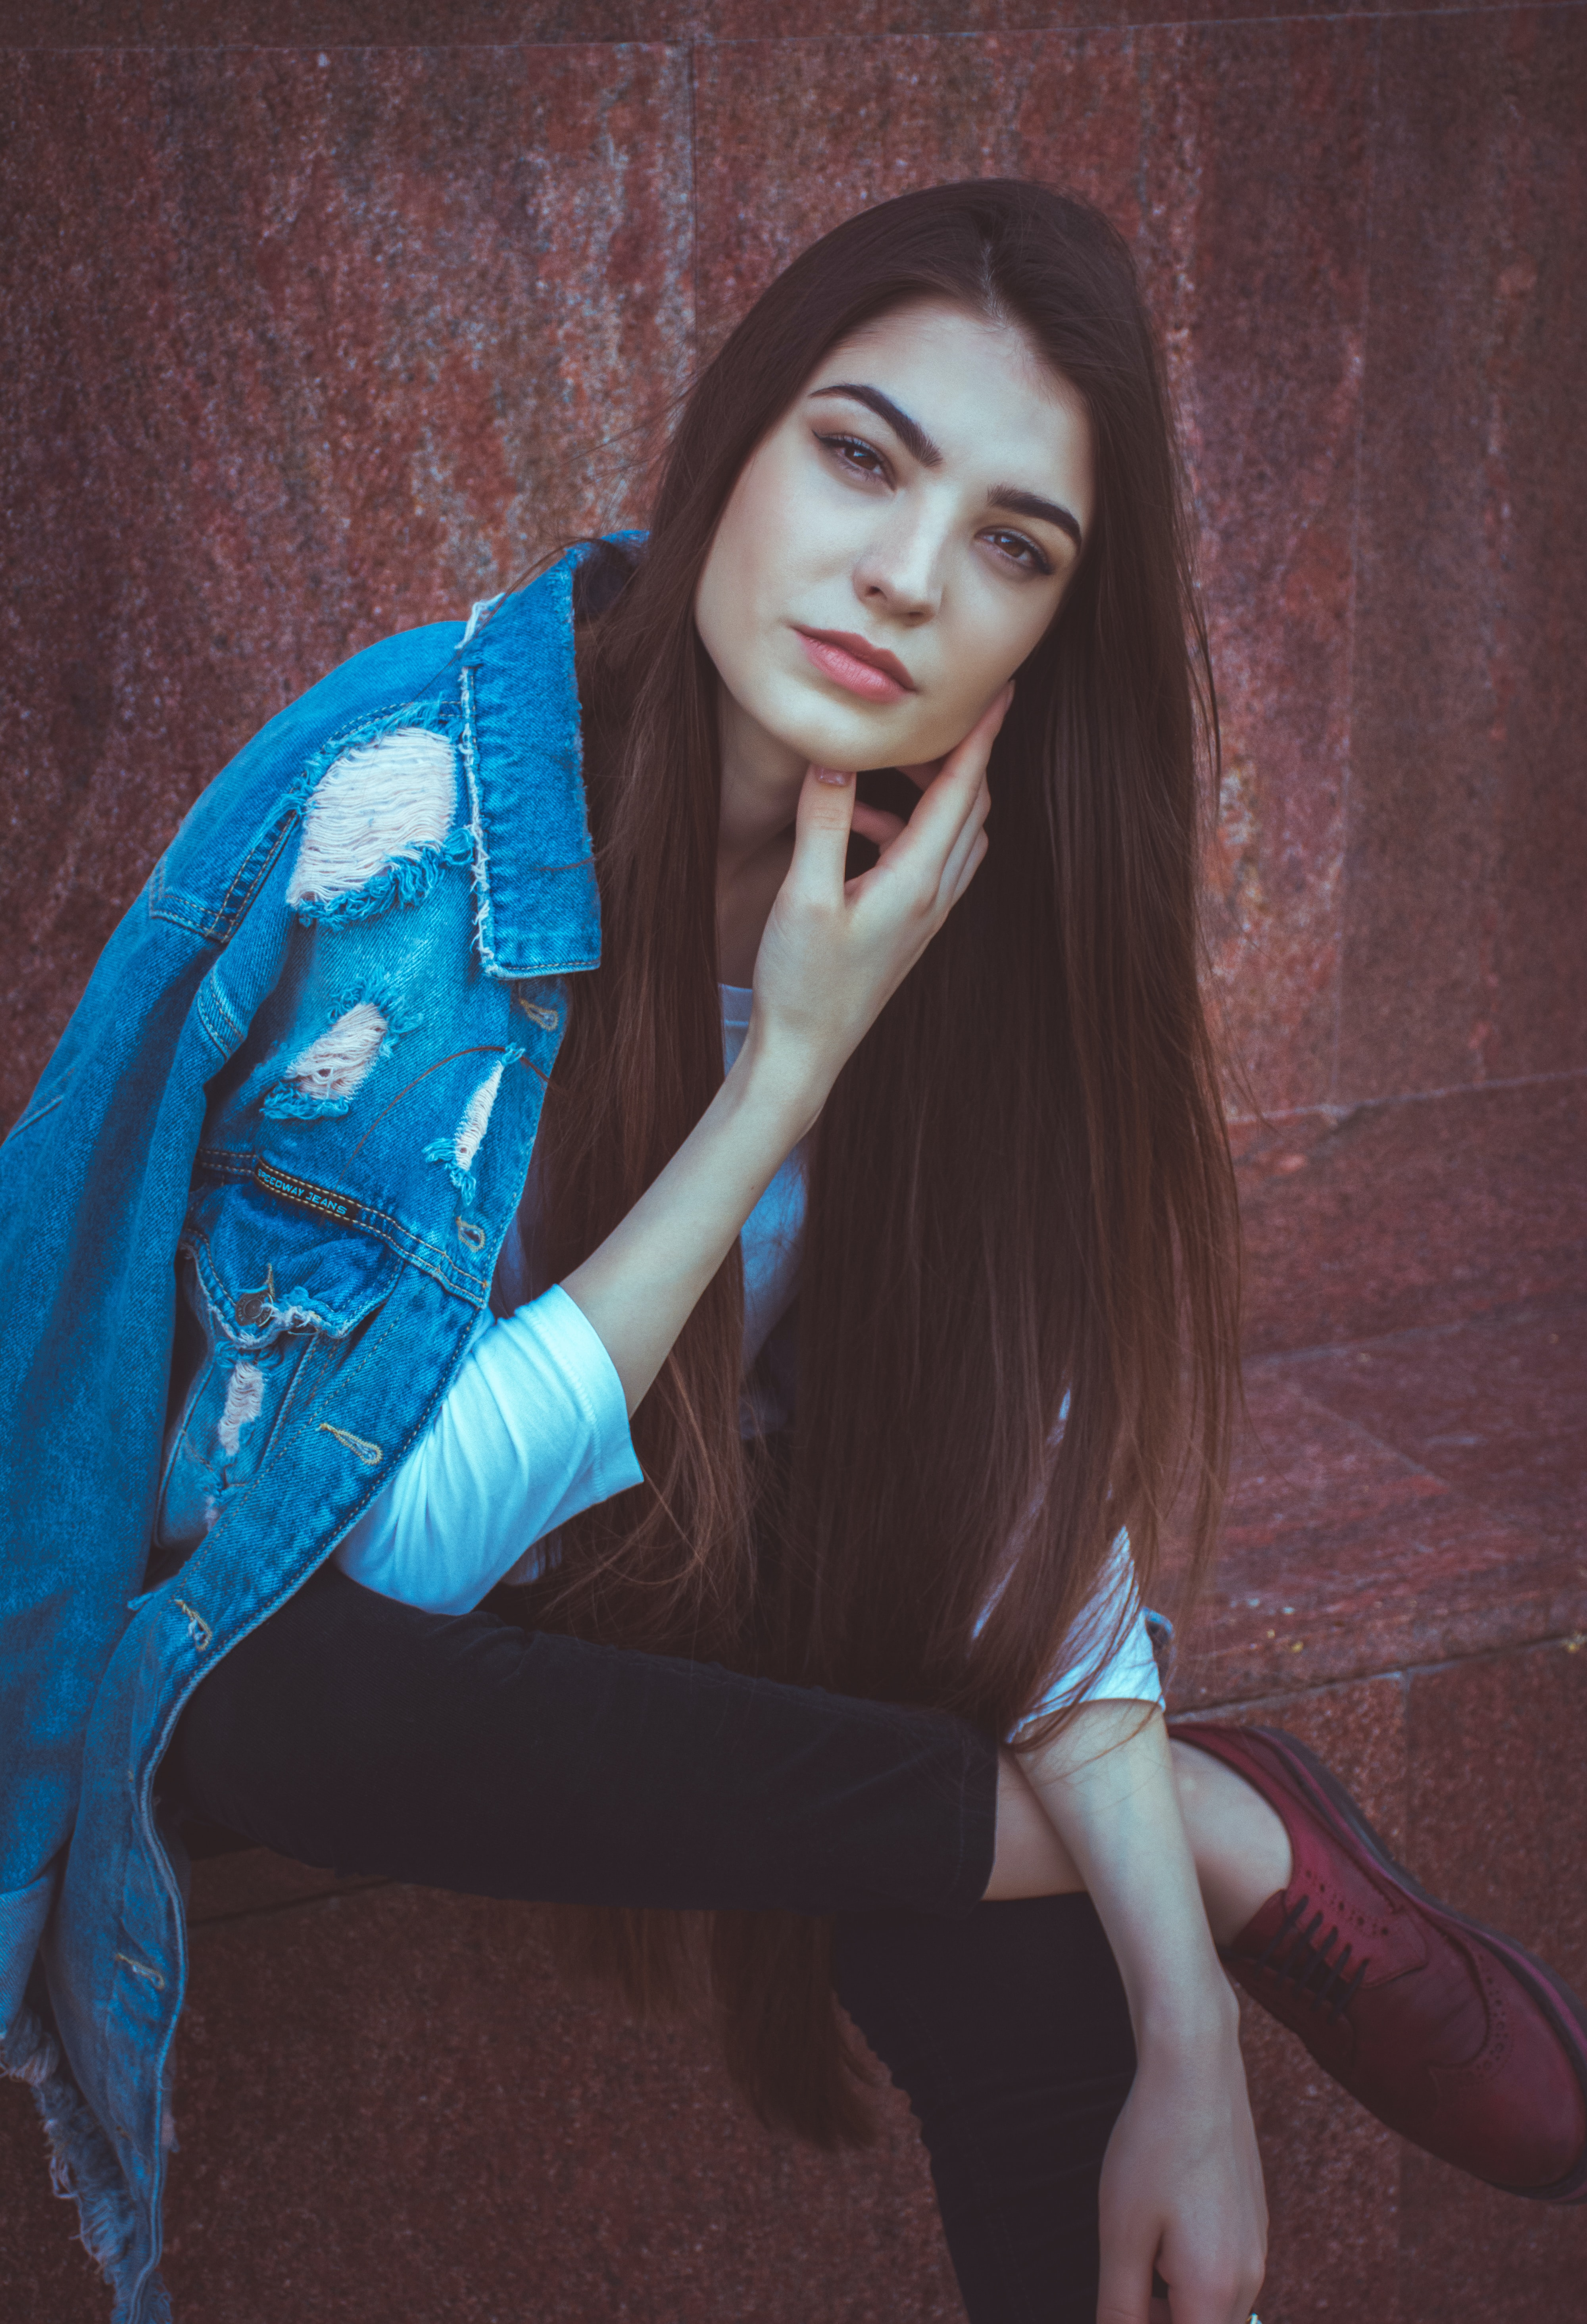 Woman with long hair posing in a jean jacket near a wooden wall